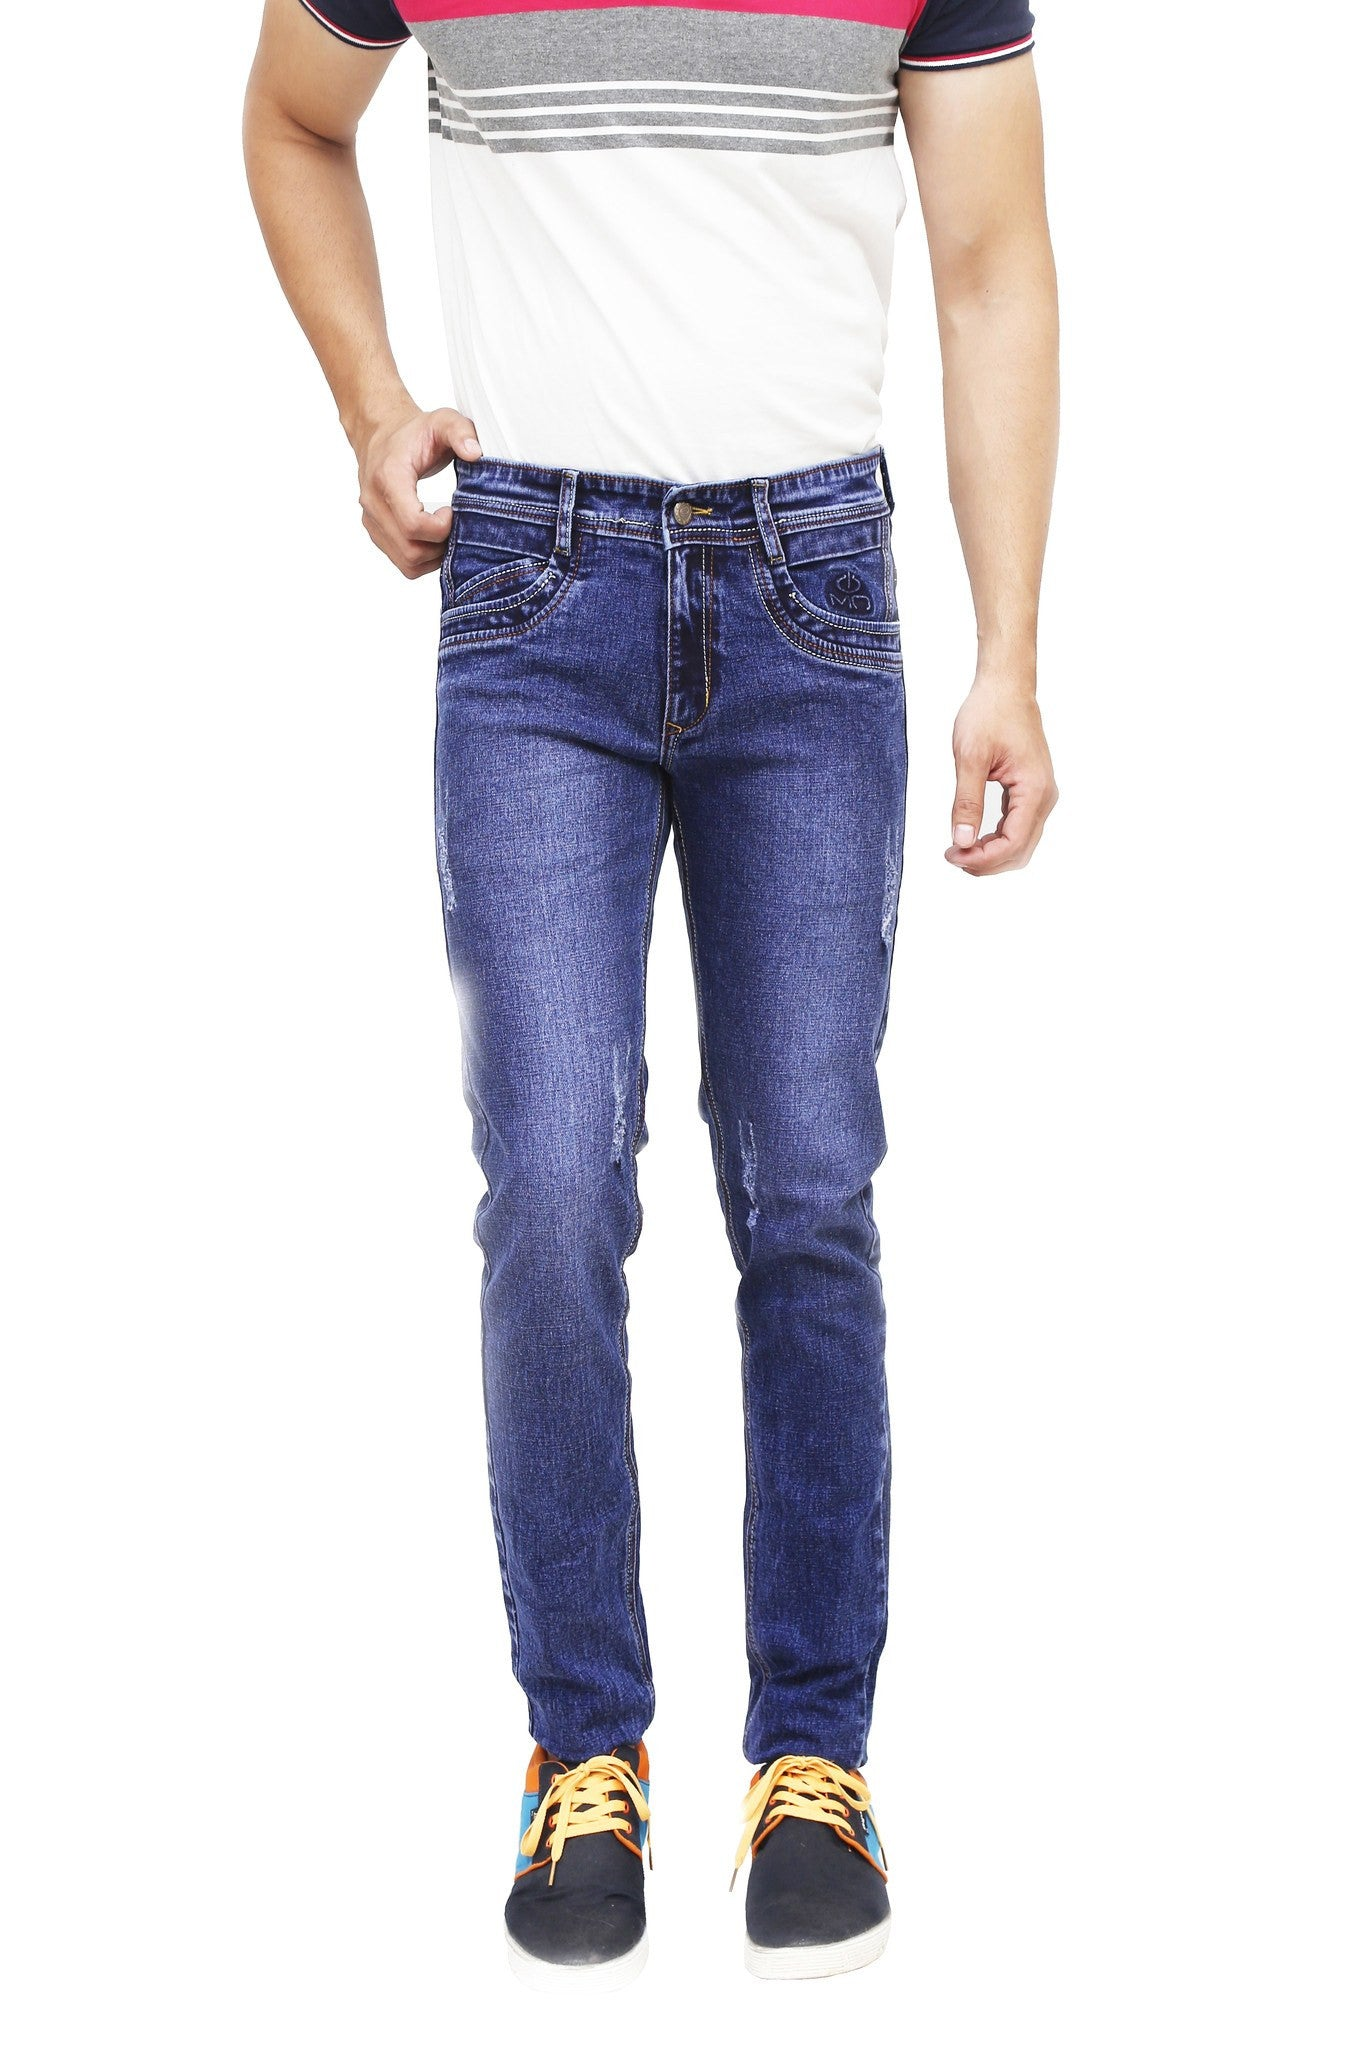 Shady Blacklue Nestor Jeans - Über Urban JEANS